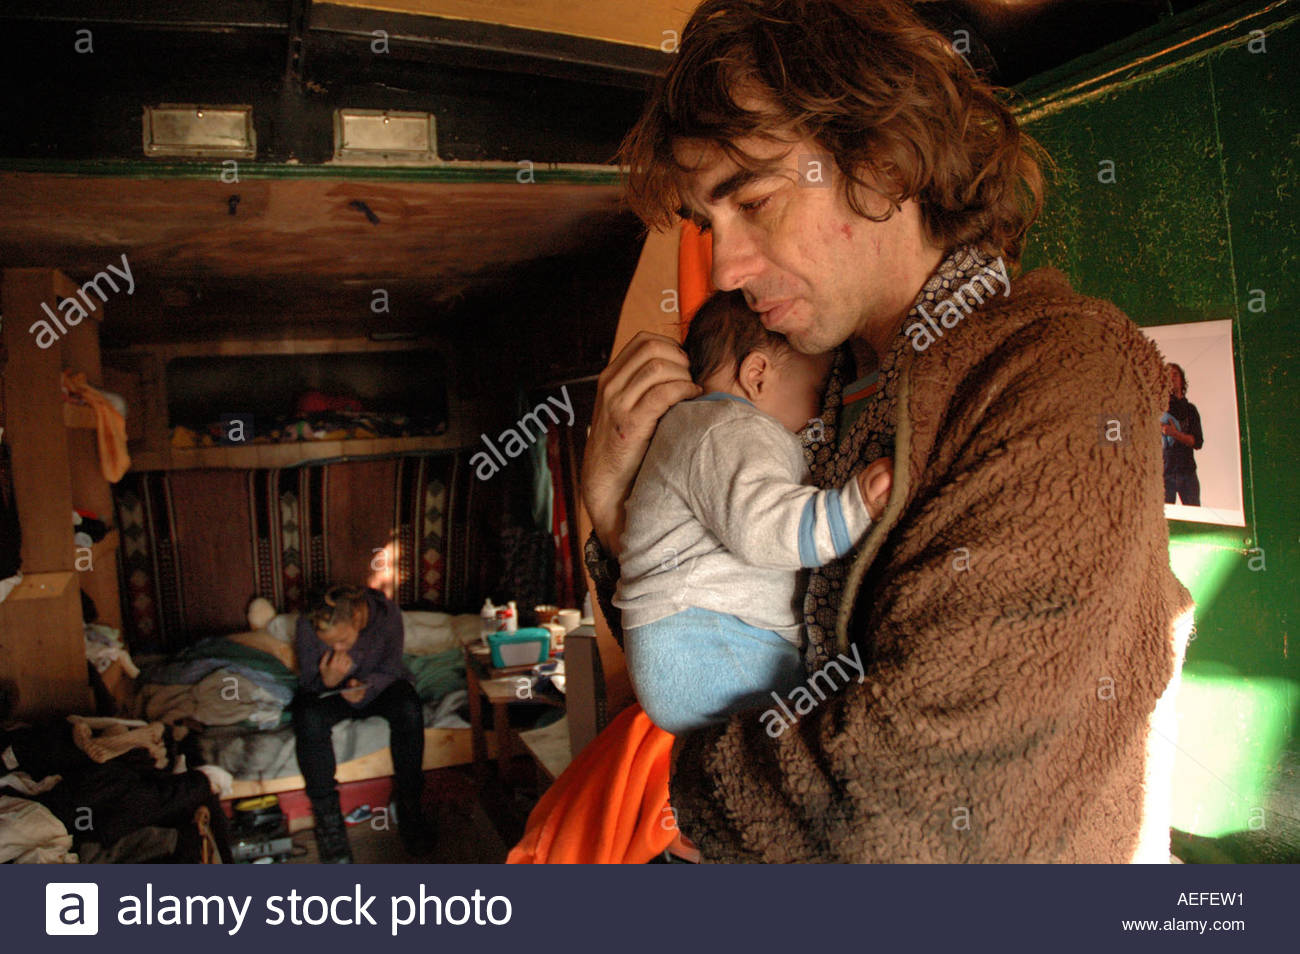 New Age traveller Father and new baby living in a horsebox  caravan. - Stock Image